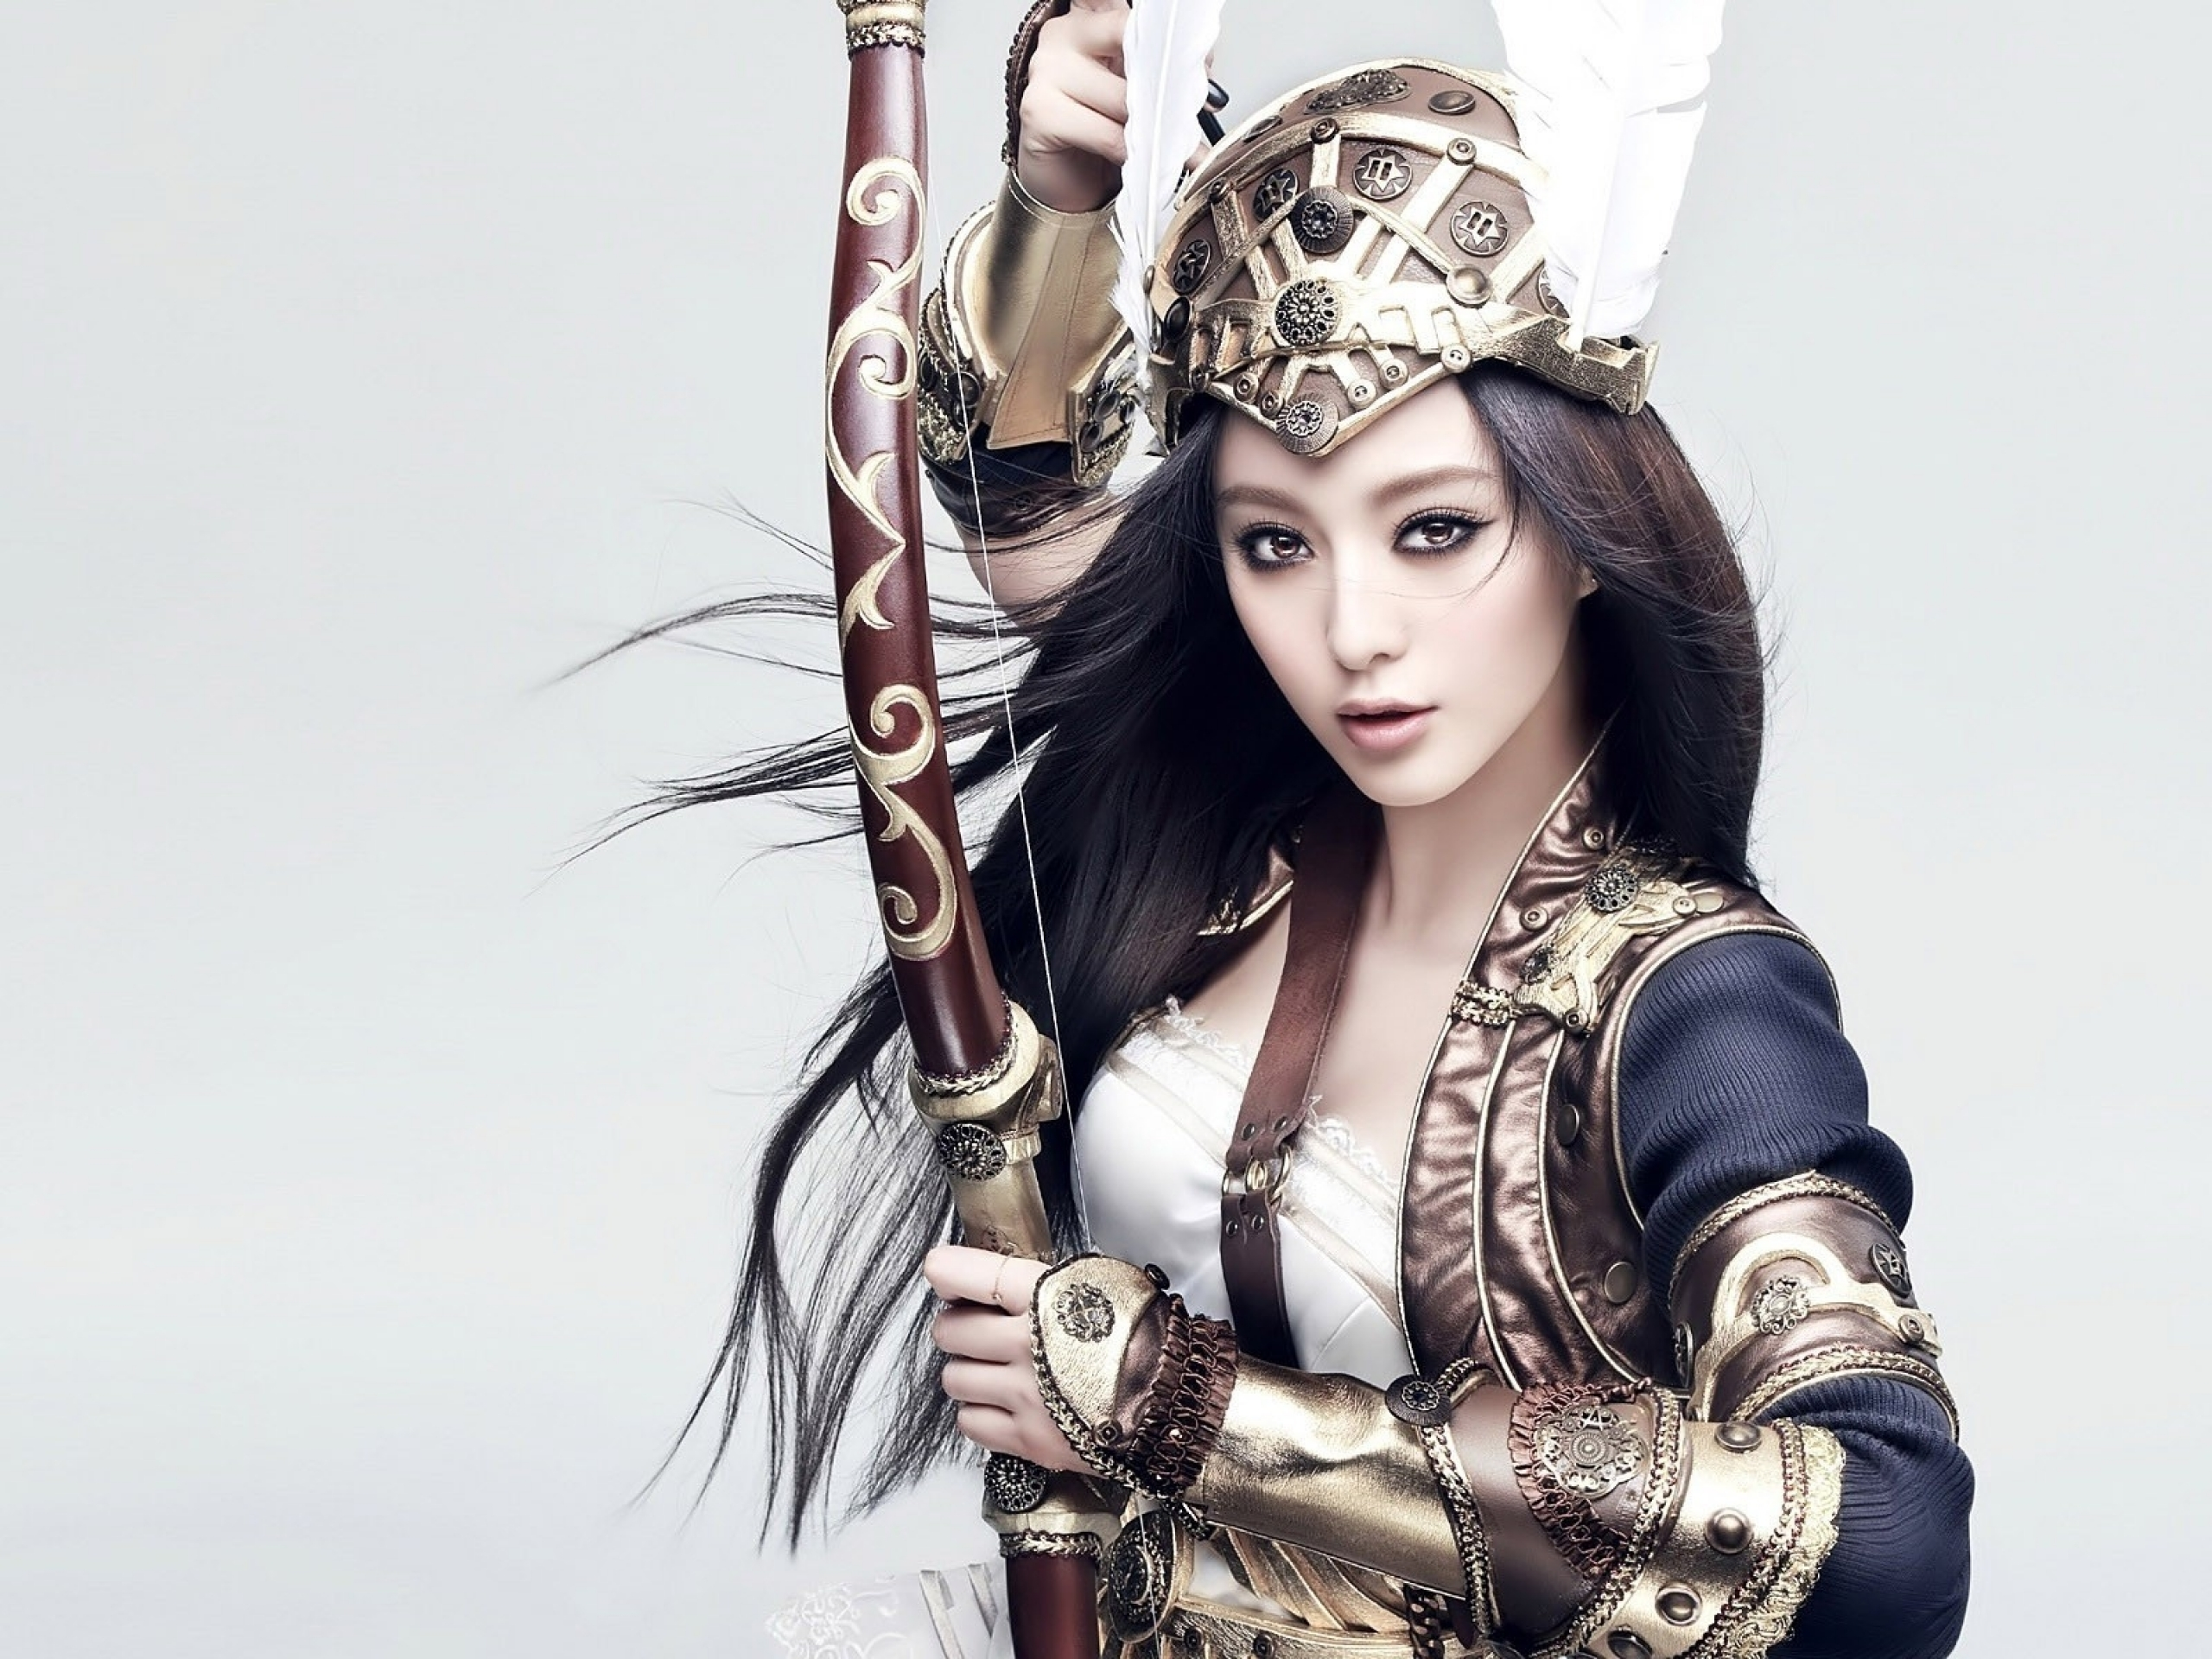 cosplay 1920x1080 image - photo #39